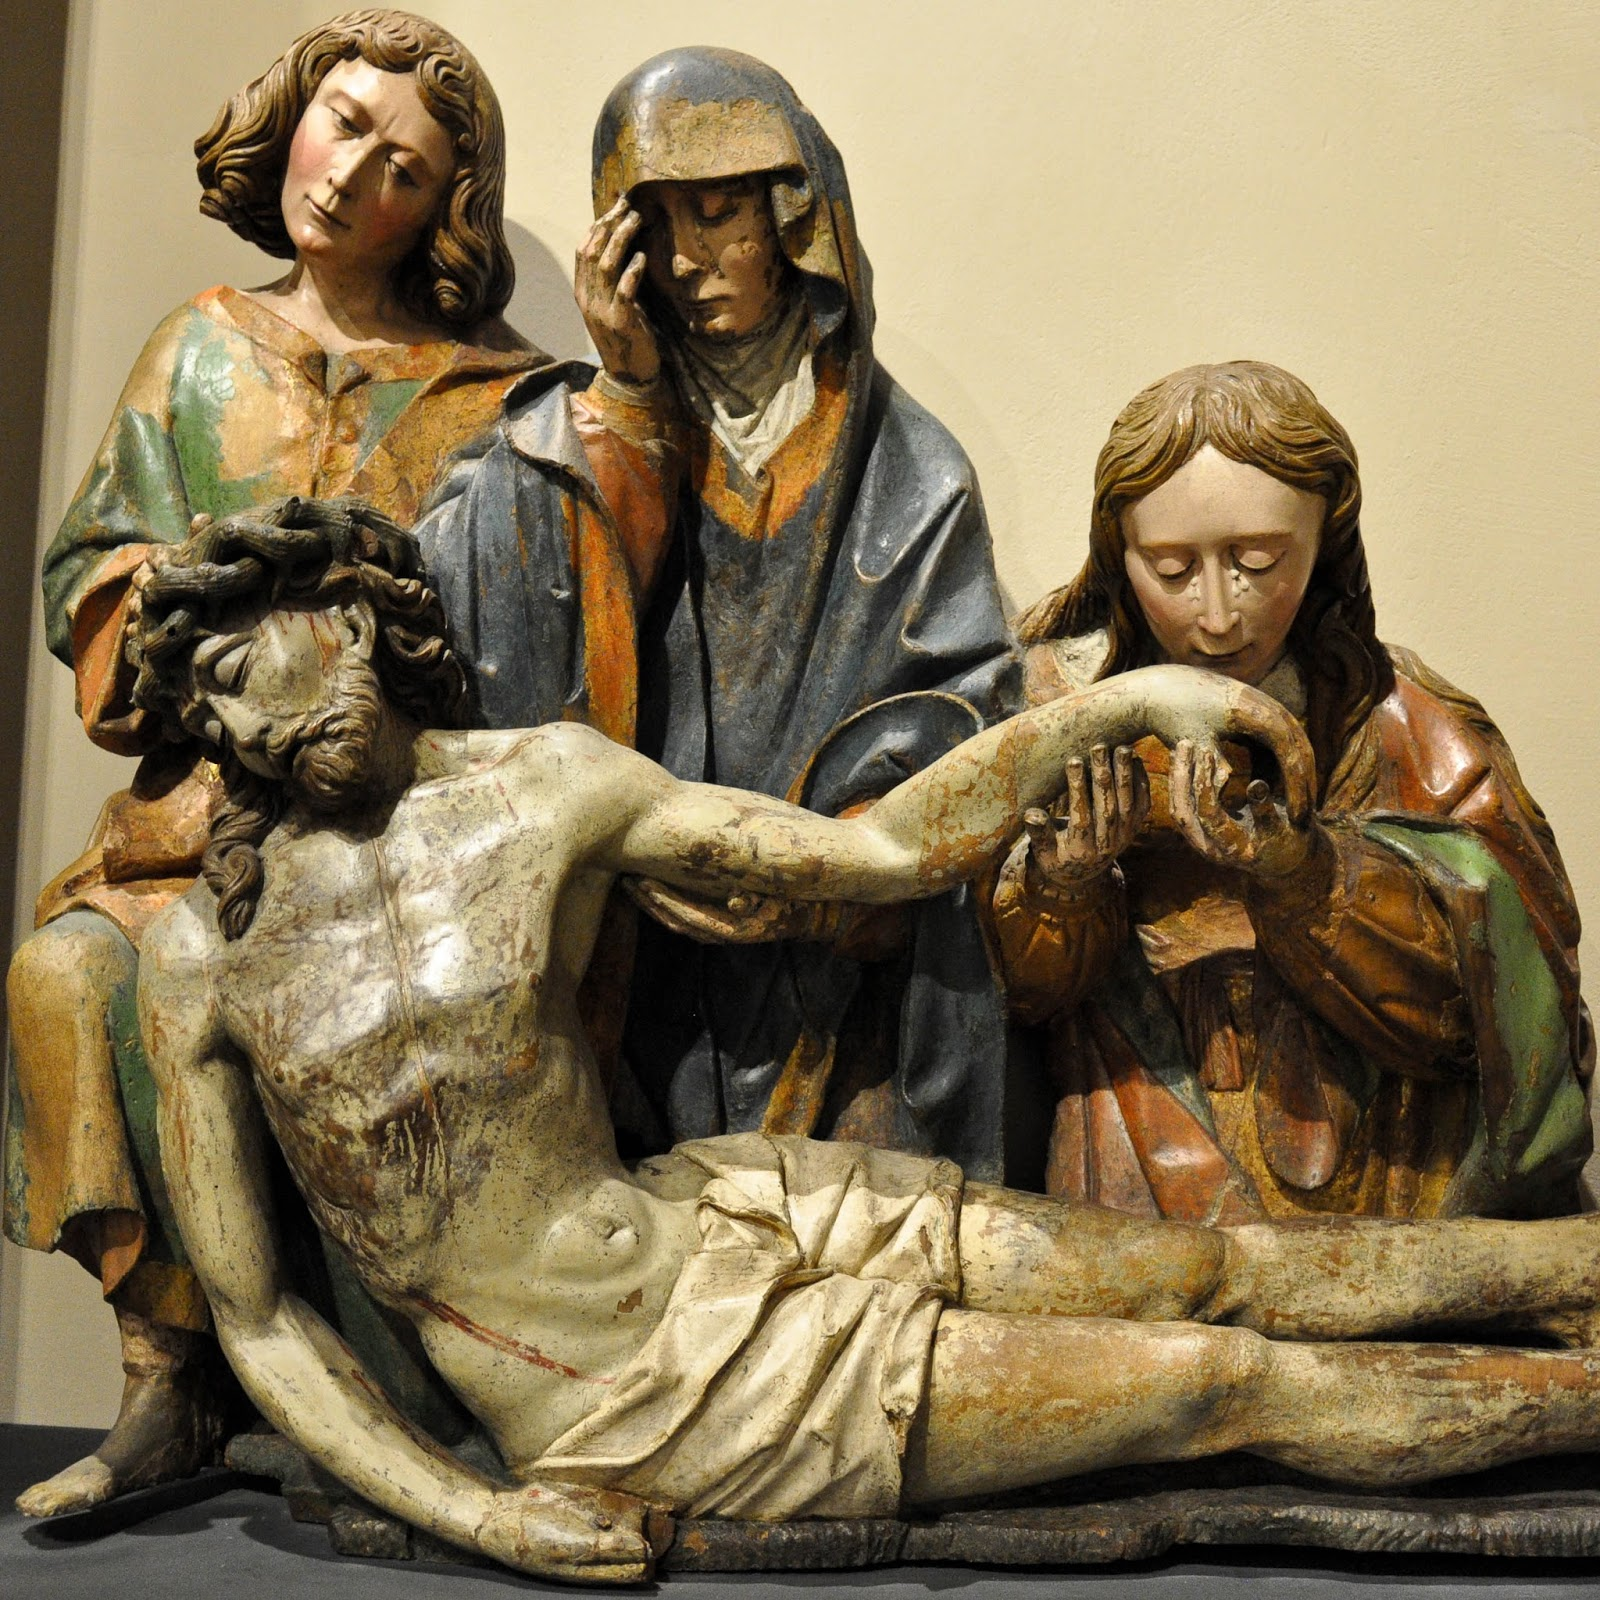 Sculpture 1510-1520, Antique Art Museum, Palazzo Madama, Turin, Italy